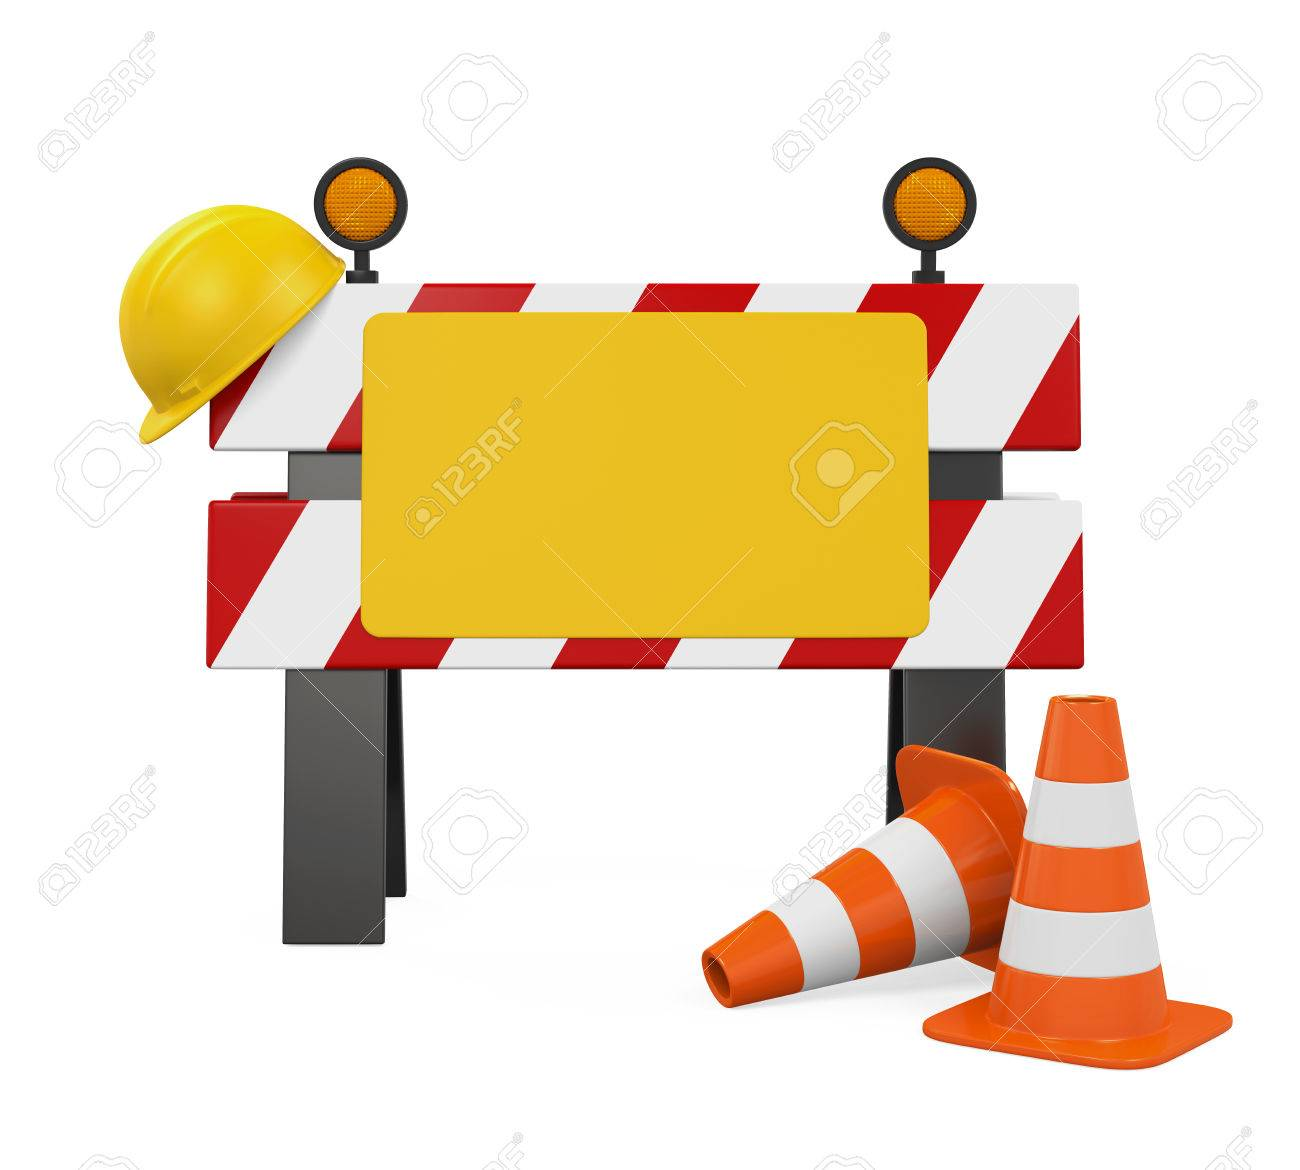 Roadblock Clipart